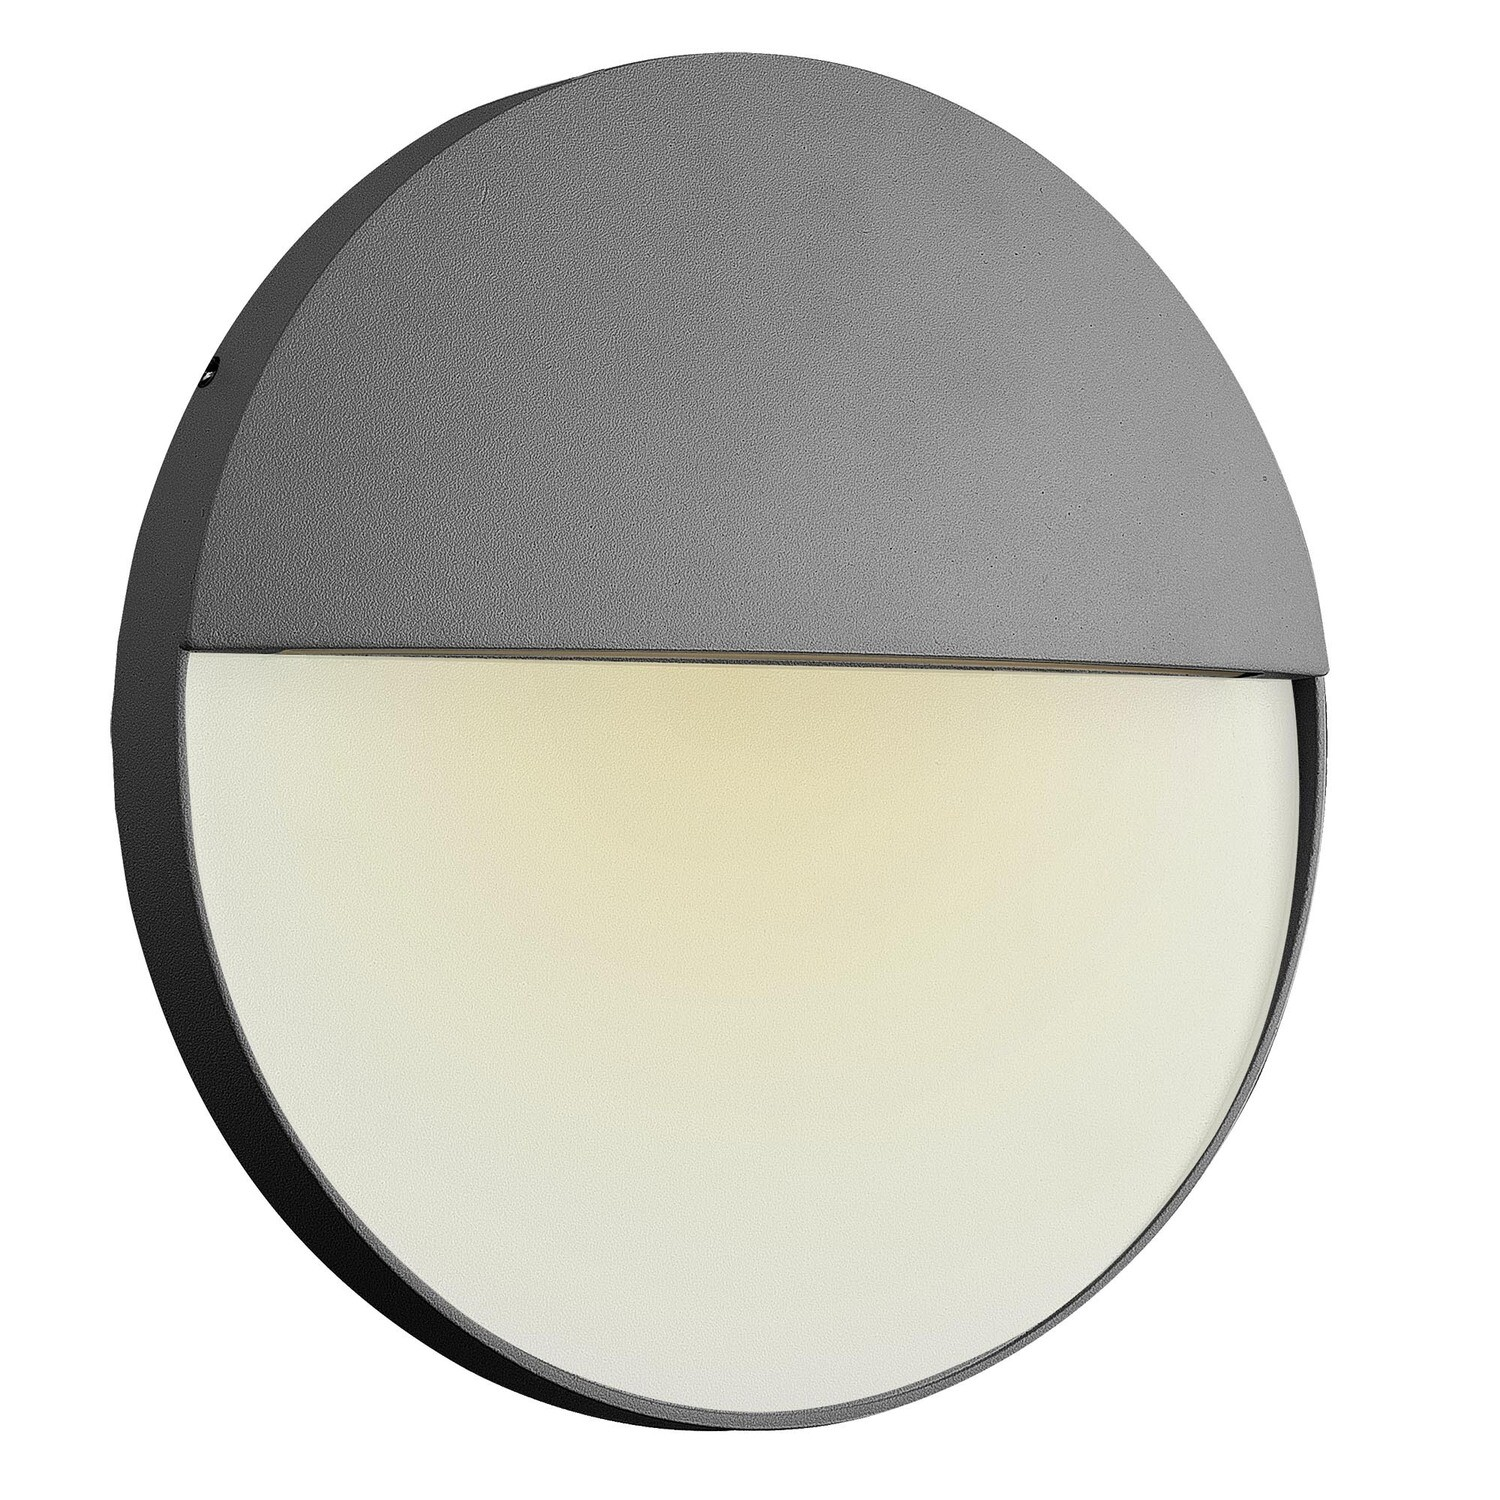 Baker Wall Lamp Large Round, 6W LED, 3000K, 275lm, IP54, Anthracite